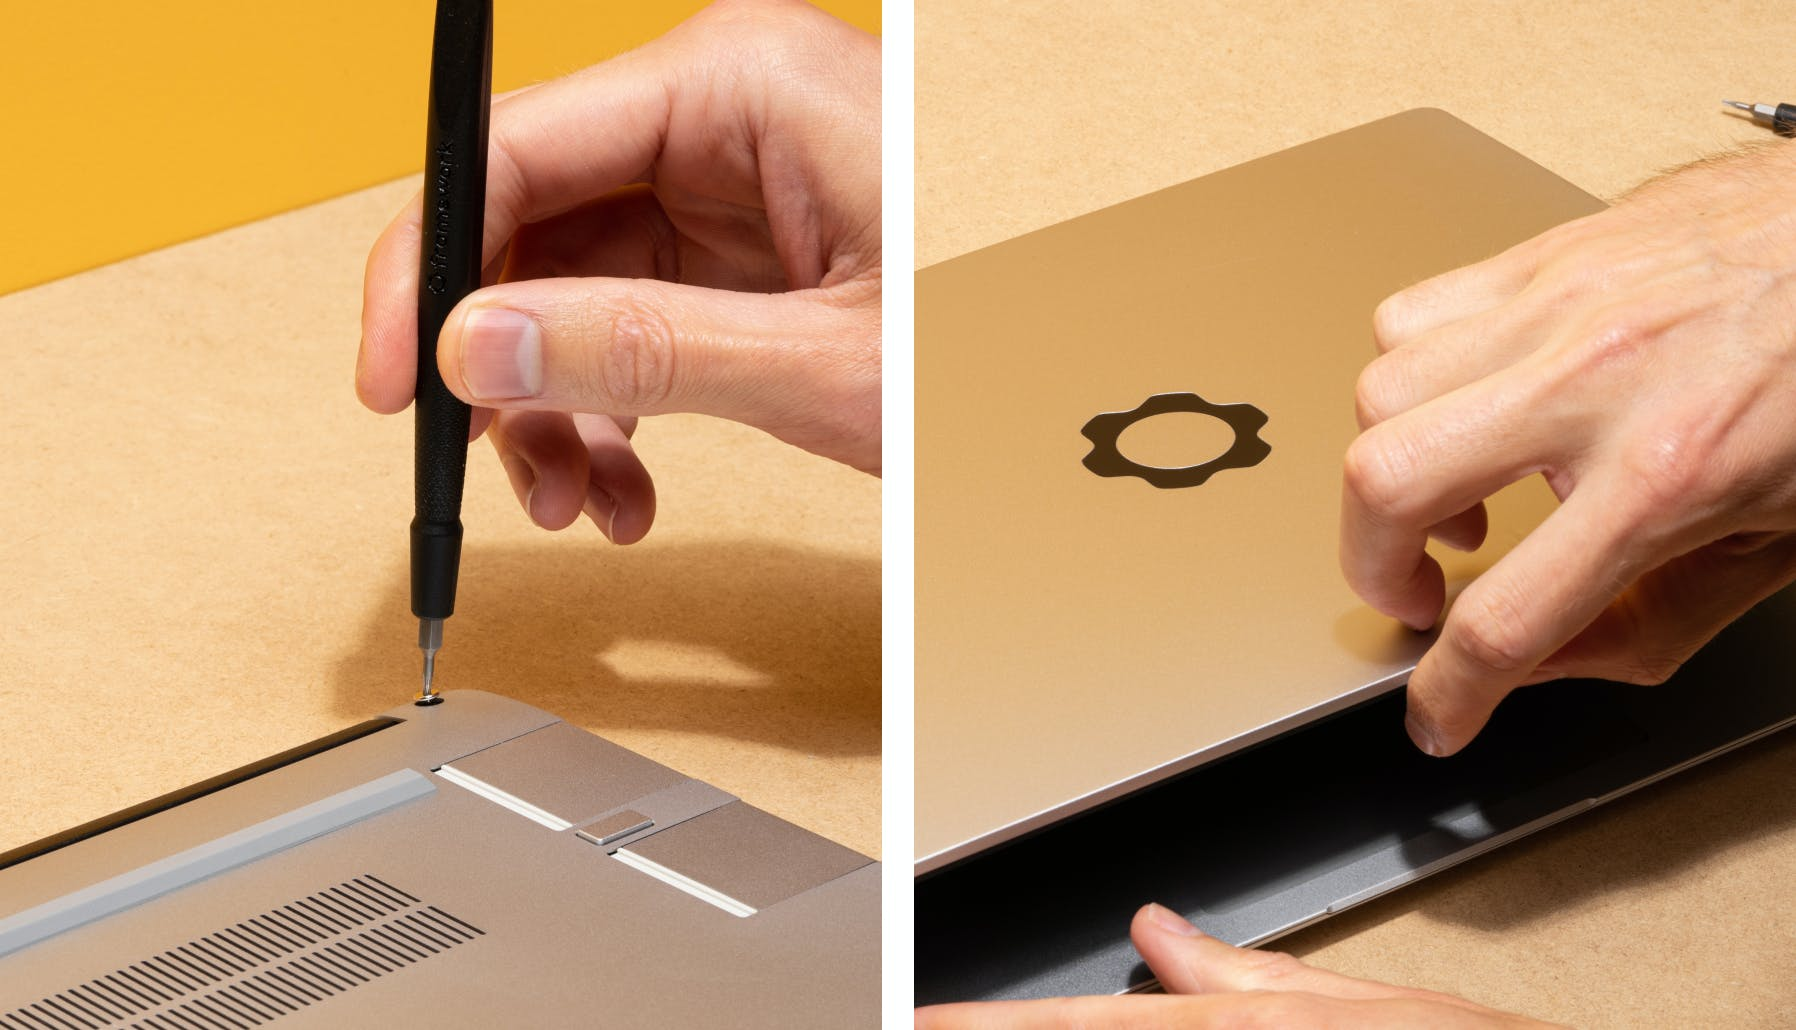 unscrewing the bottom of the laptop and opening up the laptop from the top